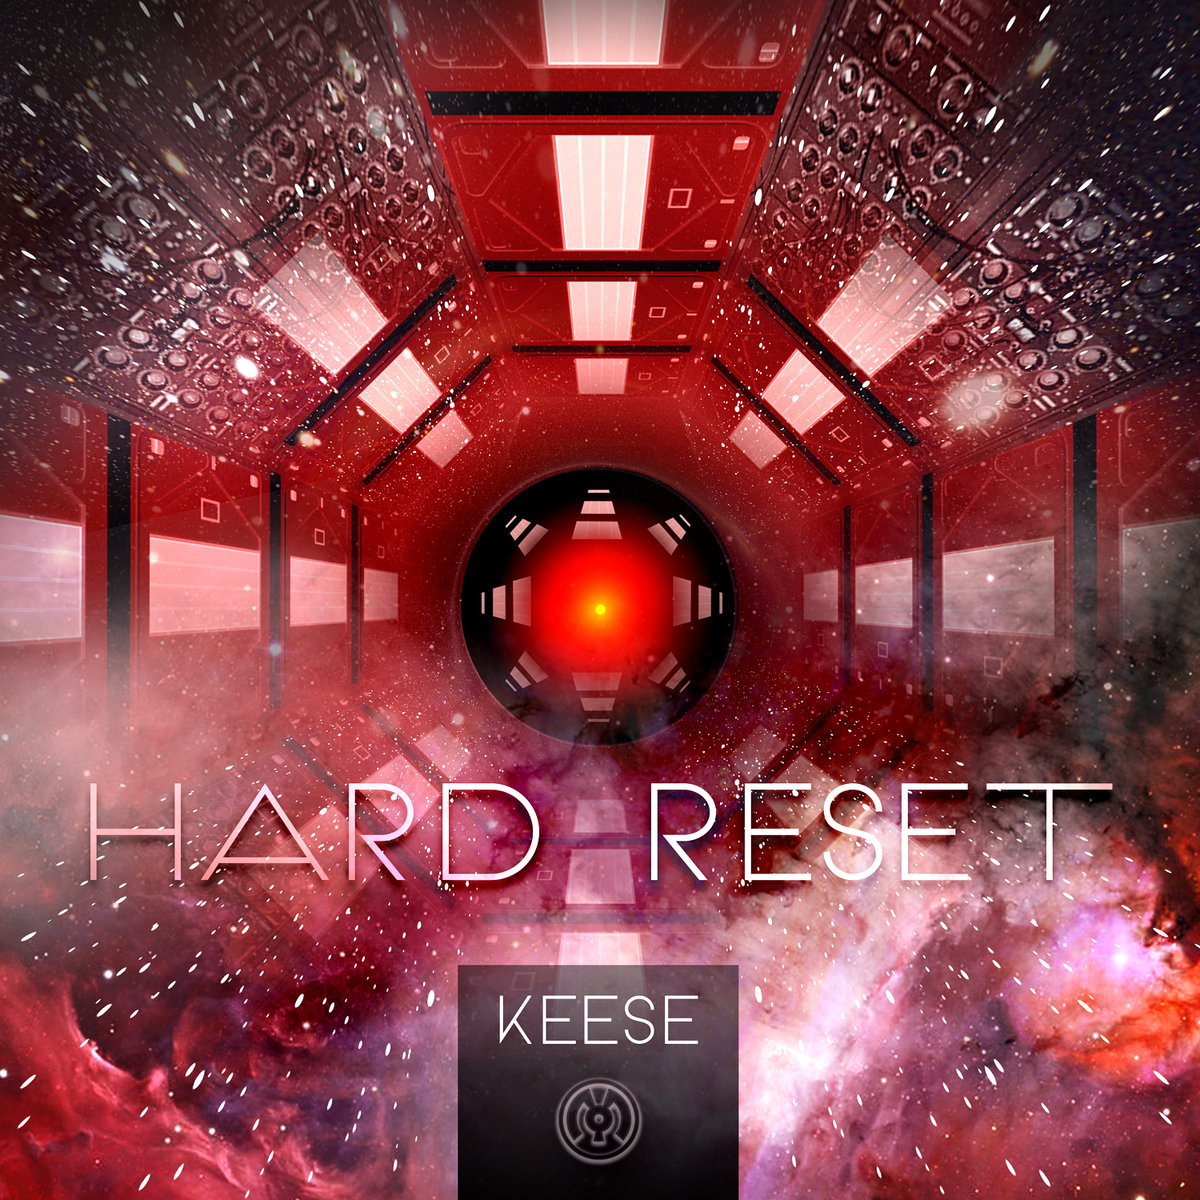 Keese - You Should Know @ 'Hard Reset' album (electronic, dubstep)